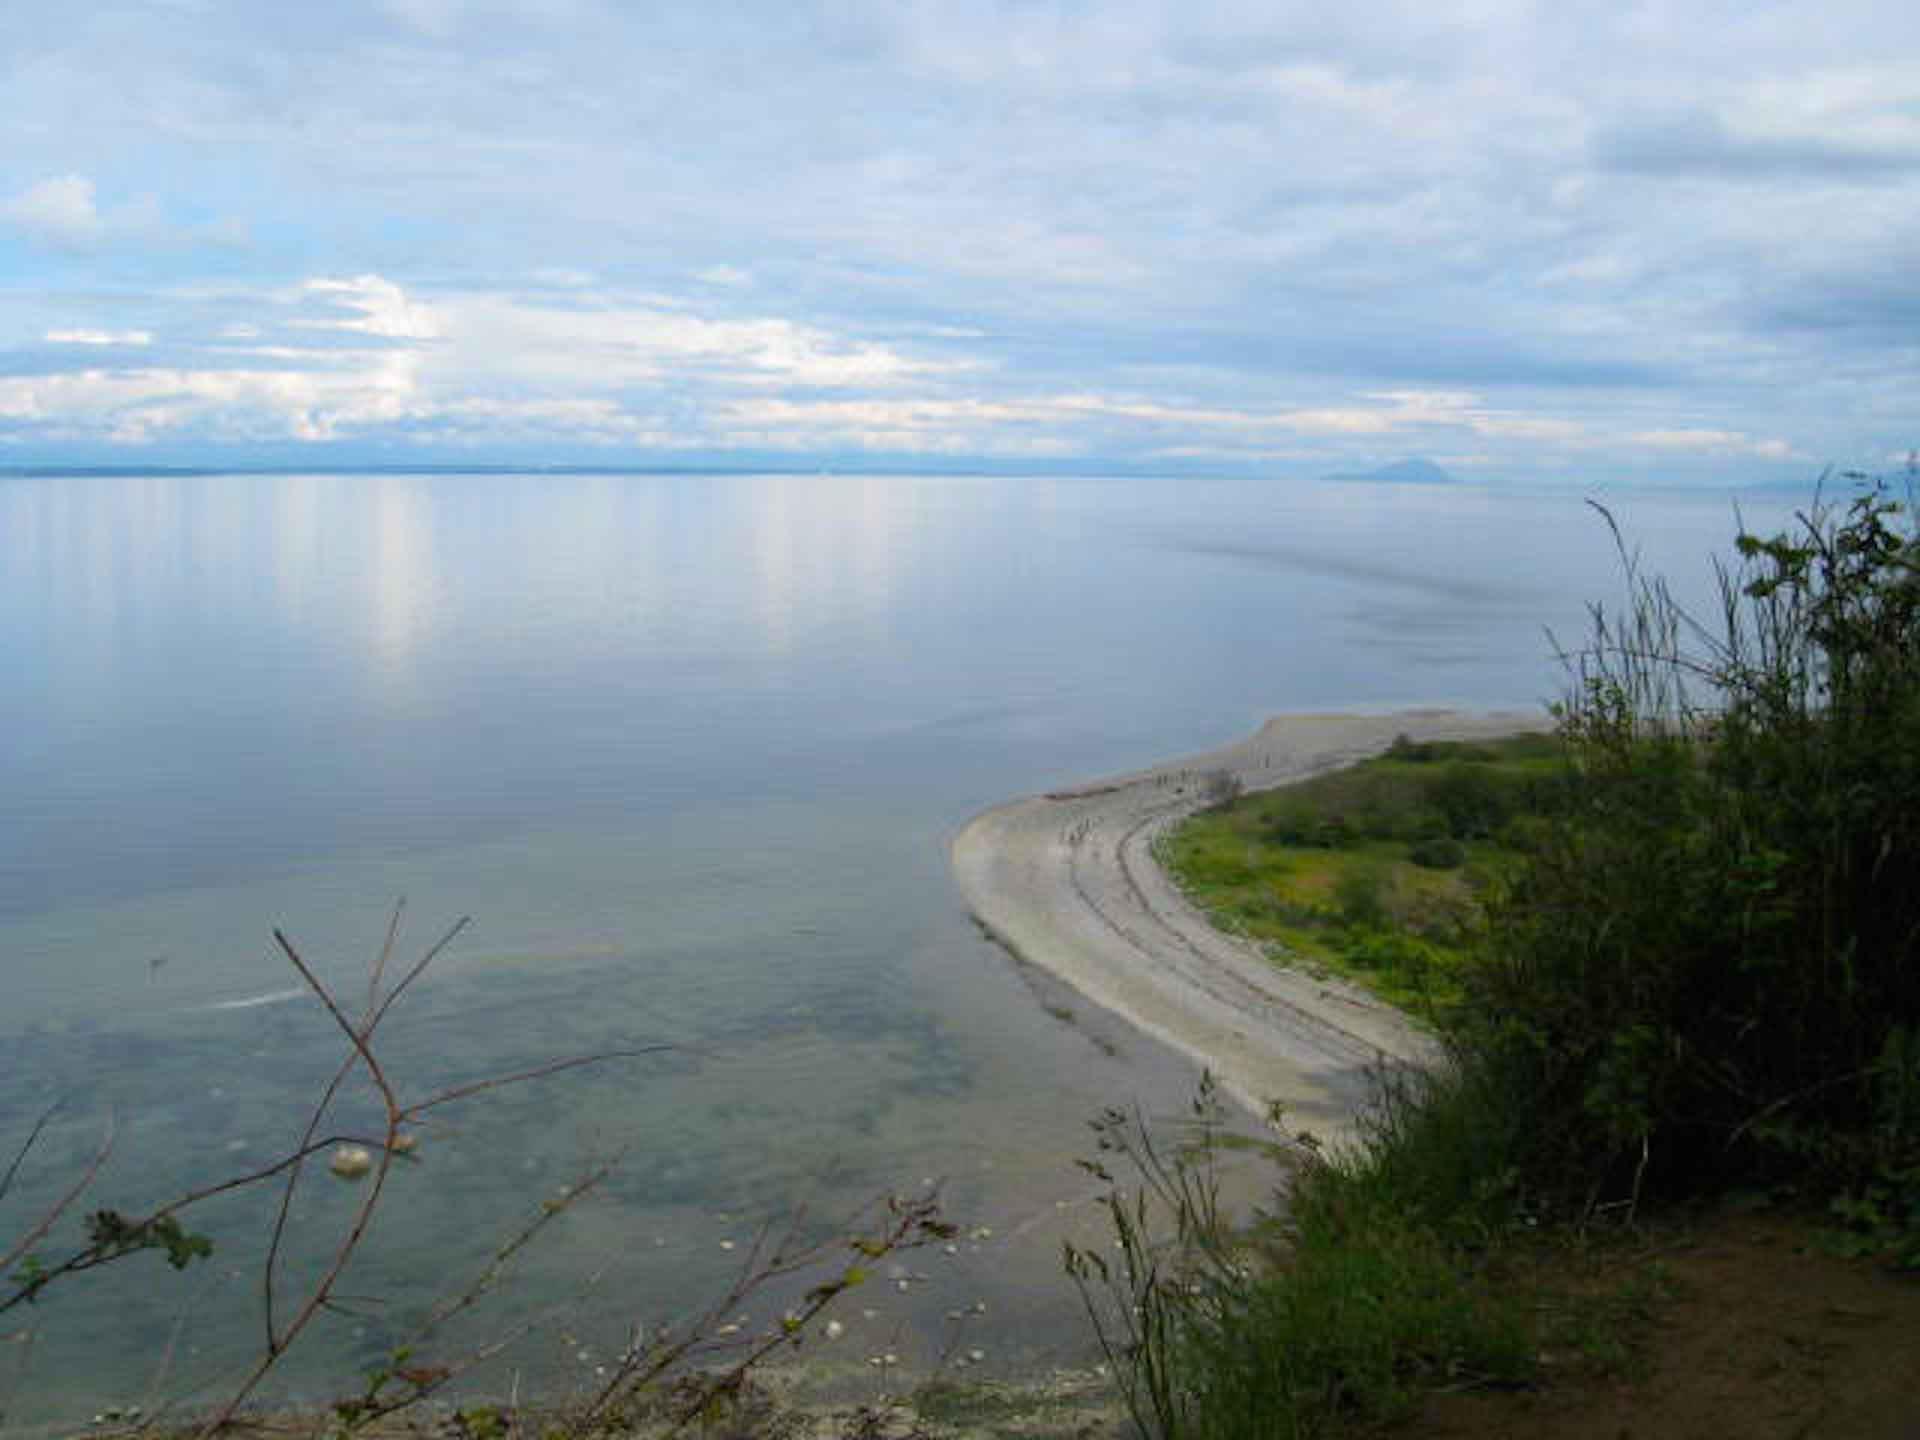 View of Boundary Bay, Point Roberts WA 98281